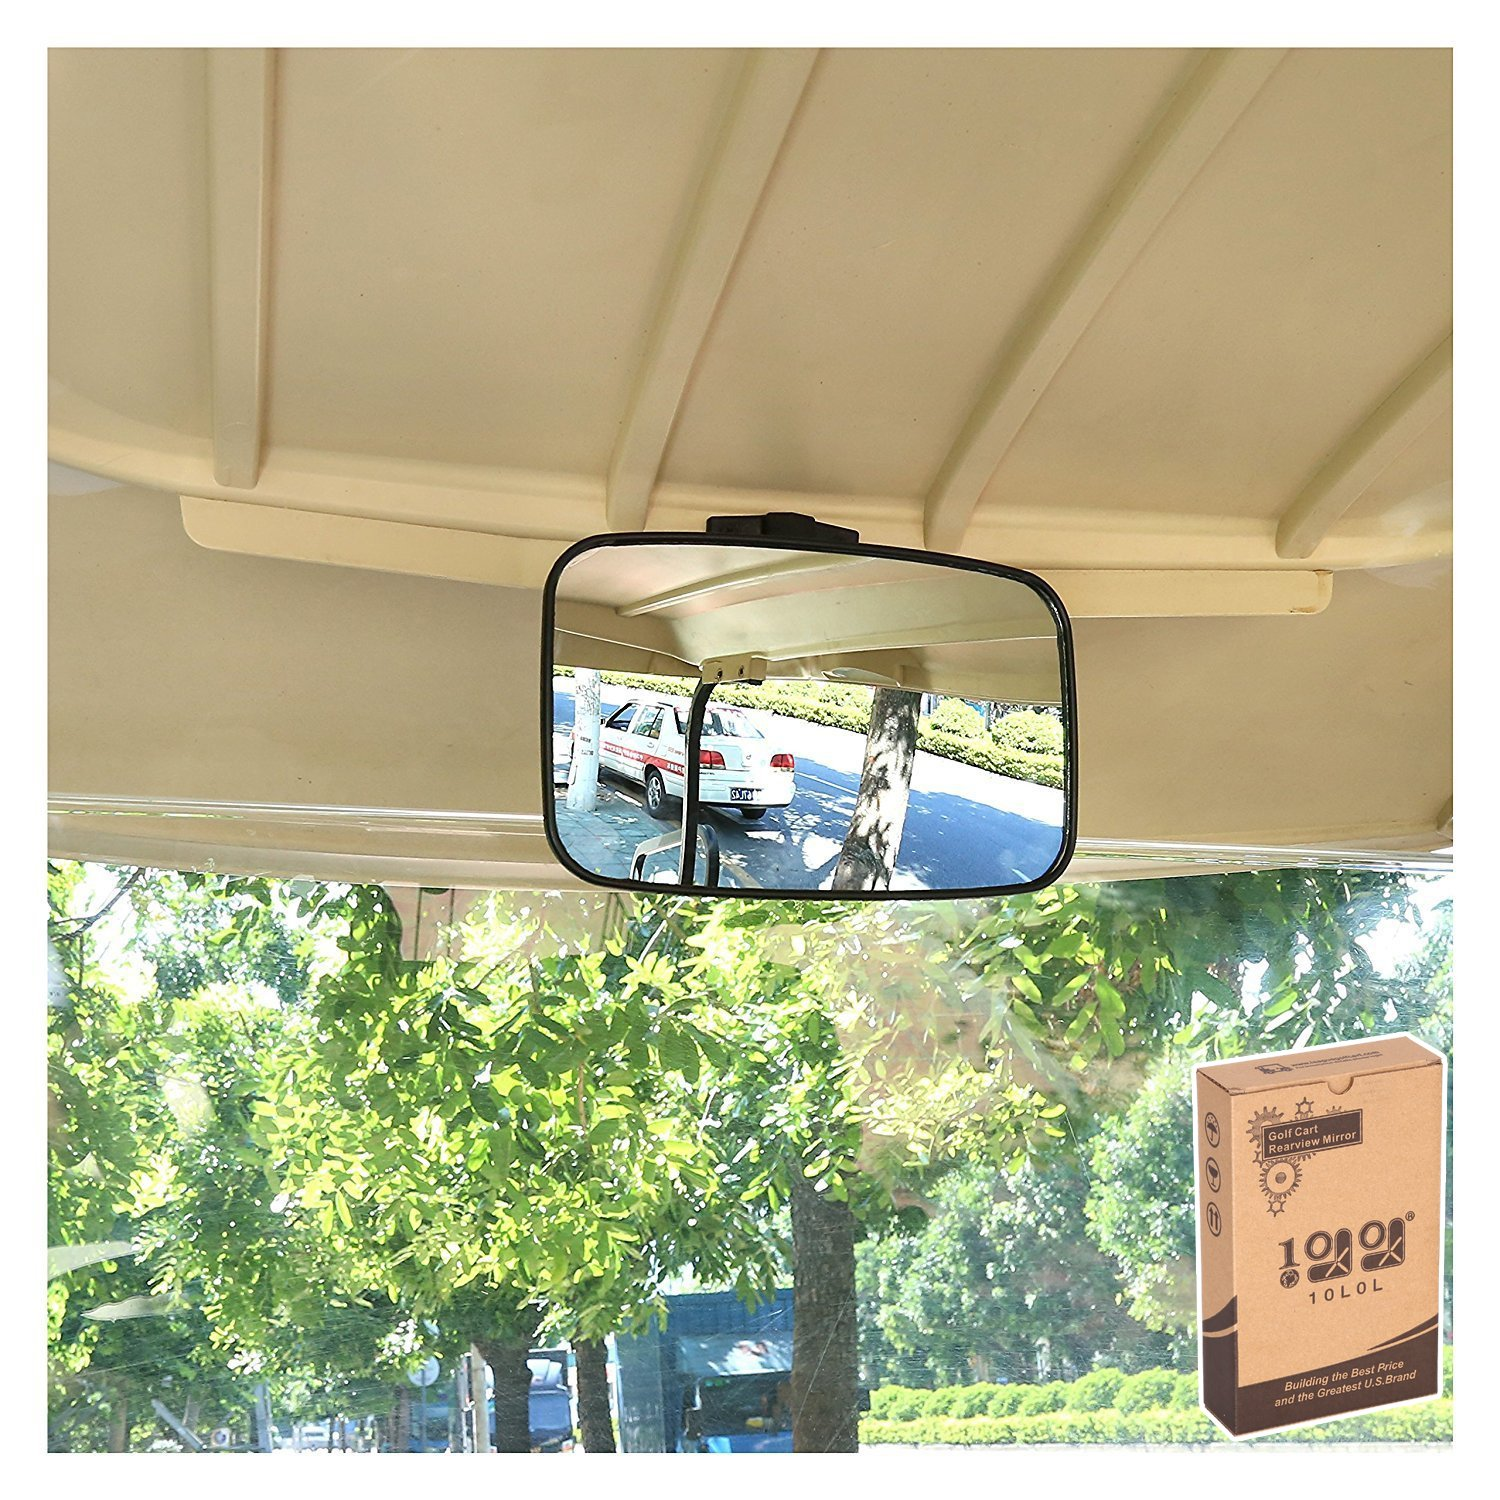 10L0L 9.57.5'' Large Radian Extra Wide Panoramic Rear View Mirror Black Fits for EZGO Yamaha Club Car Golf Cart by 10L0L